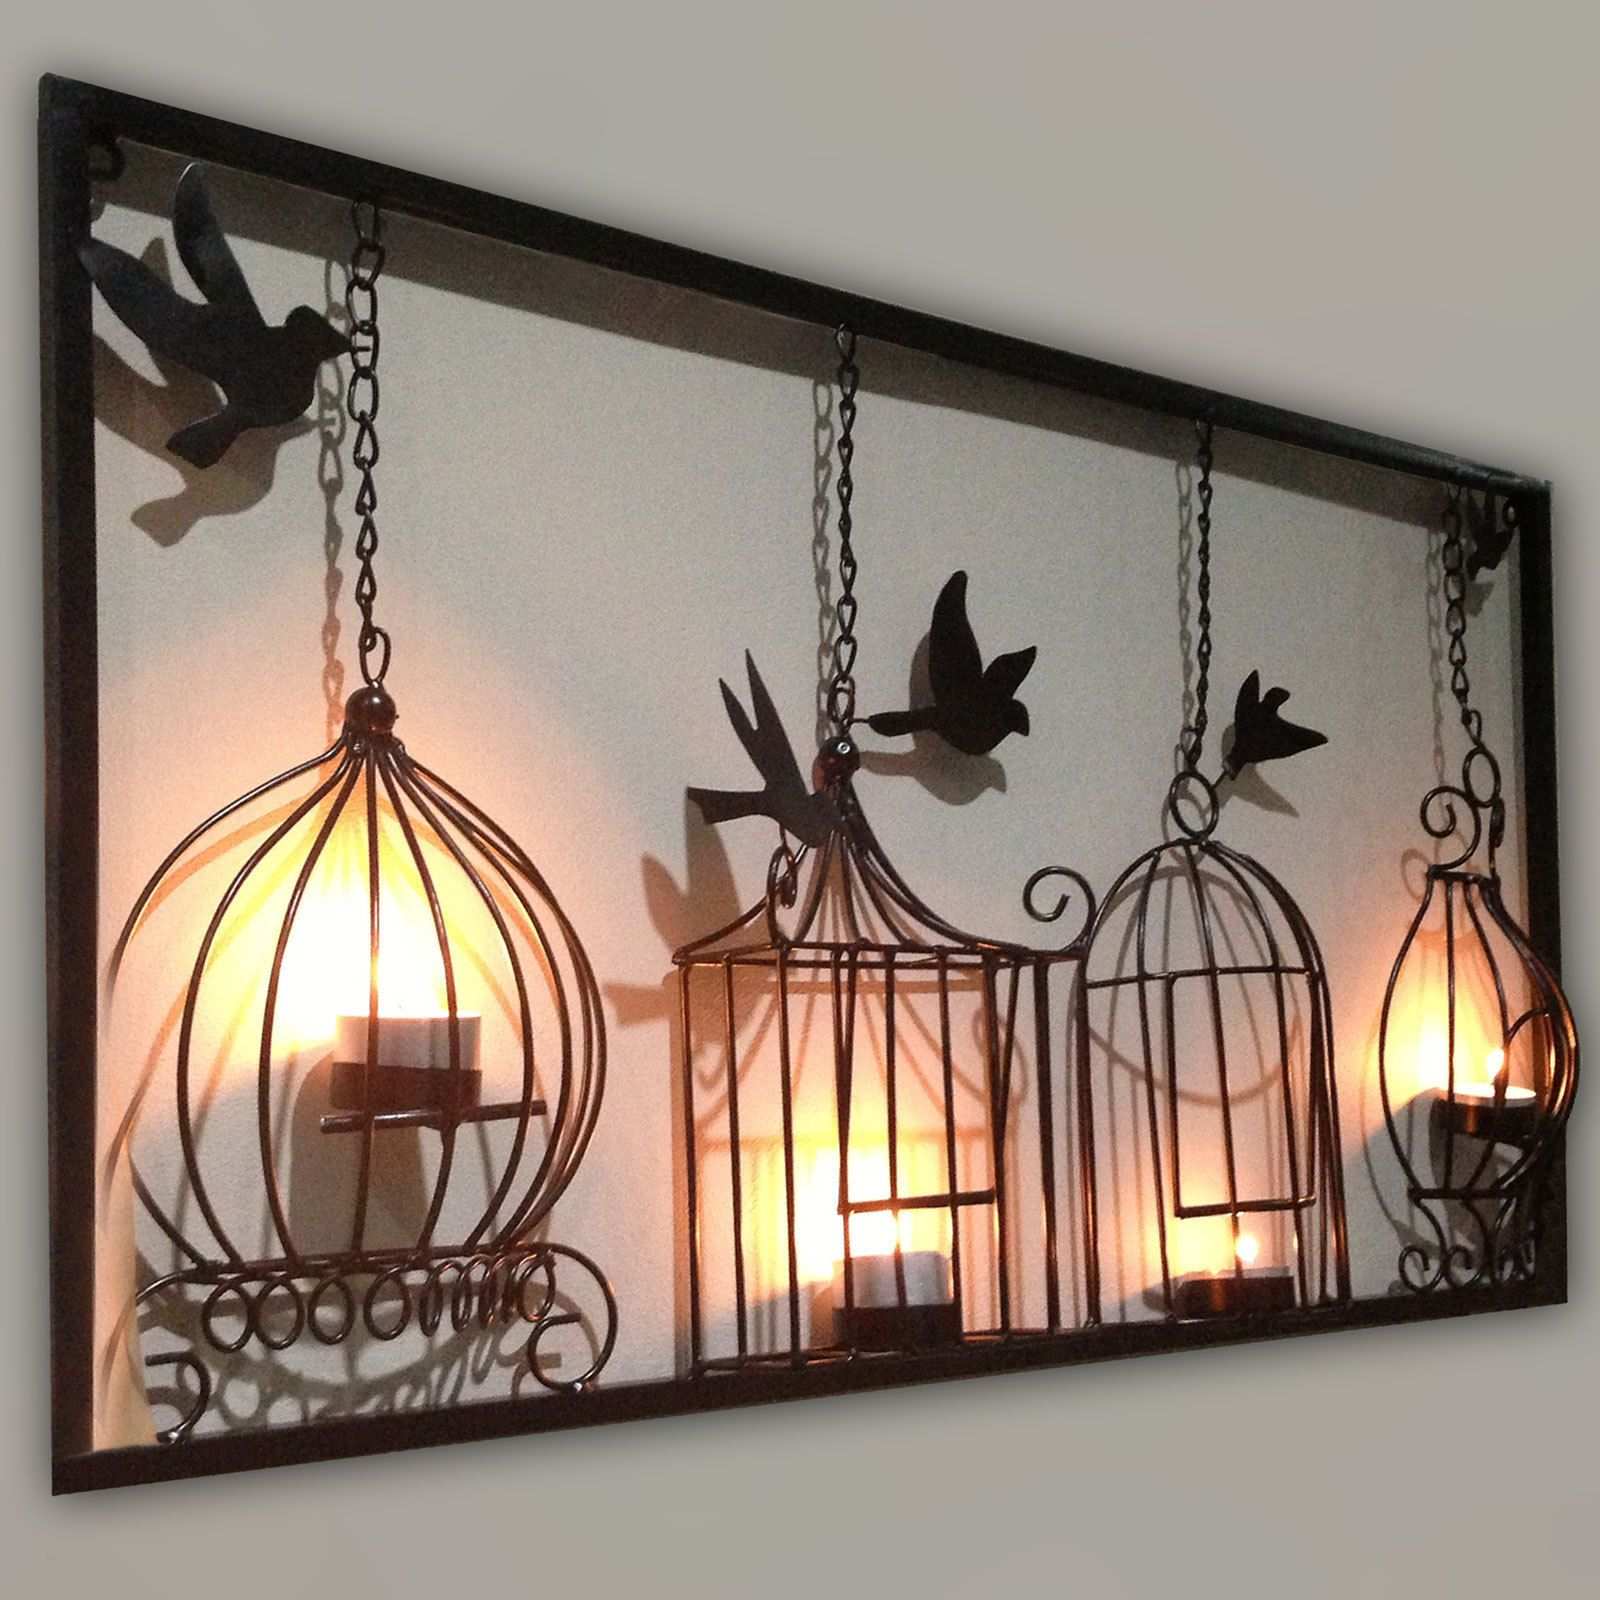 Black Wrought Iron Wall Art Prepossessing Birdcage Tea Light Wall Art Metal Wall Hanging Candle Holder Black 2018